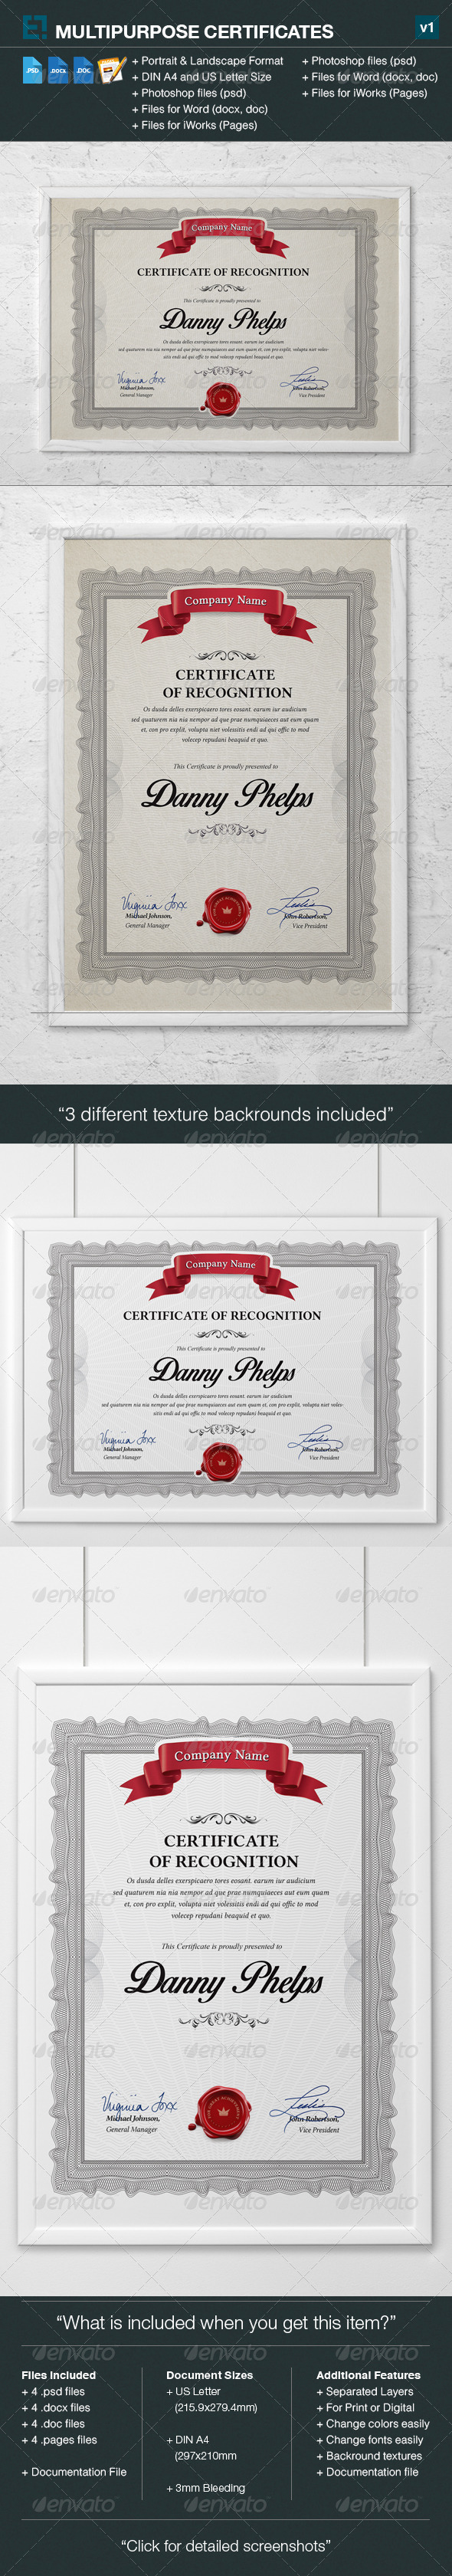 GraphicRiver Multipurpose Certificates 7165021